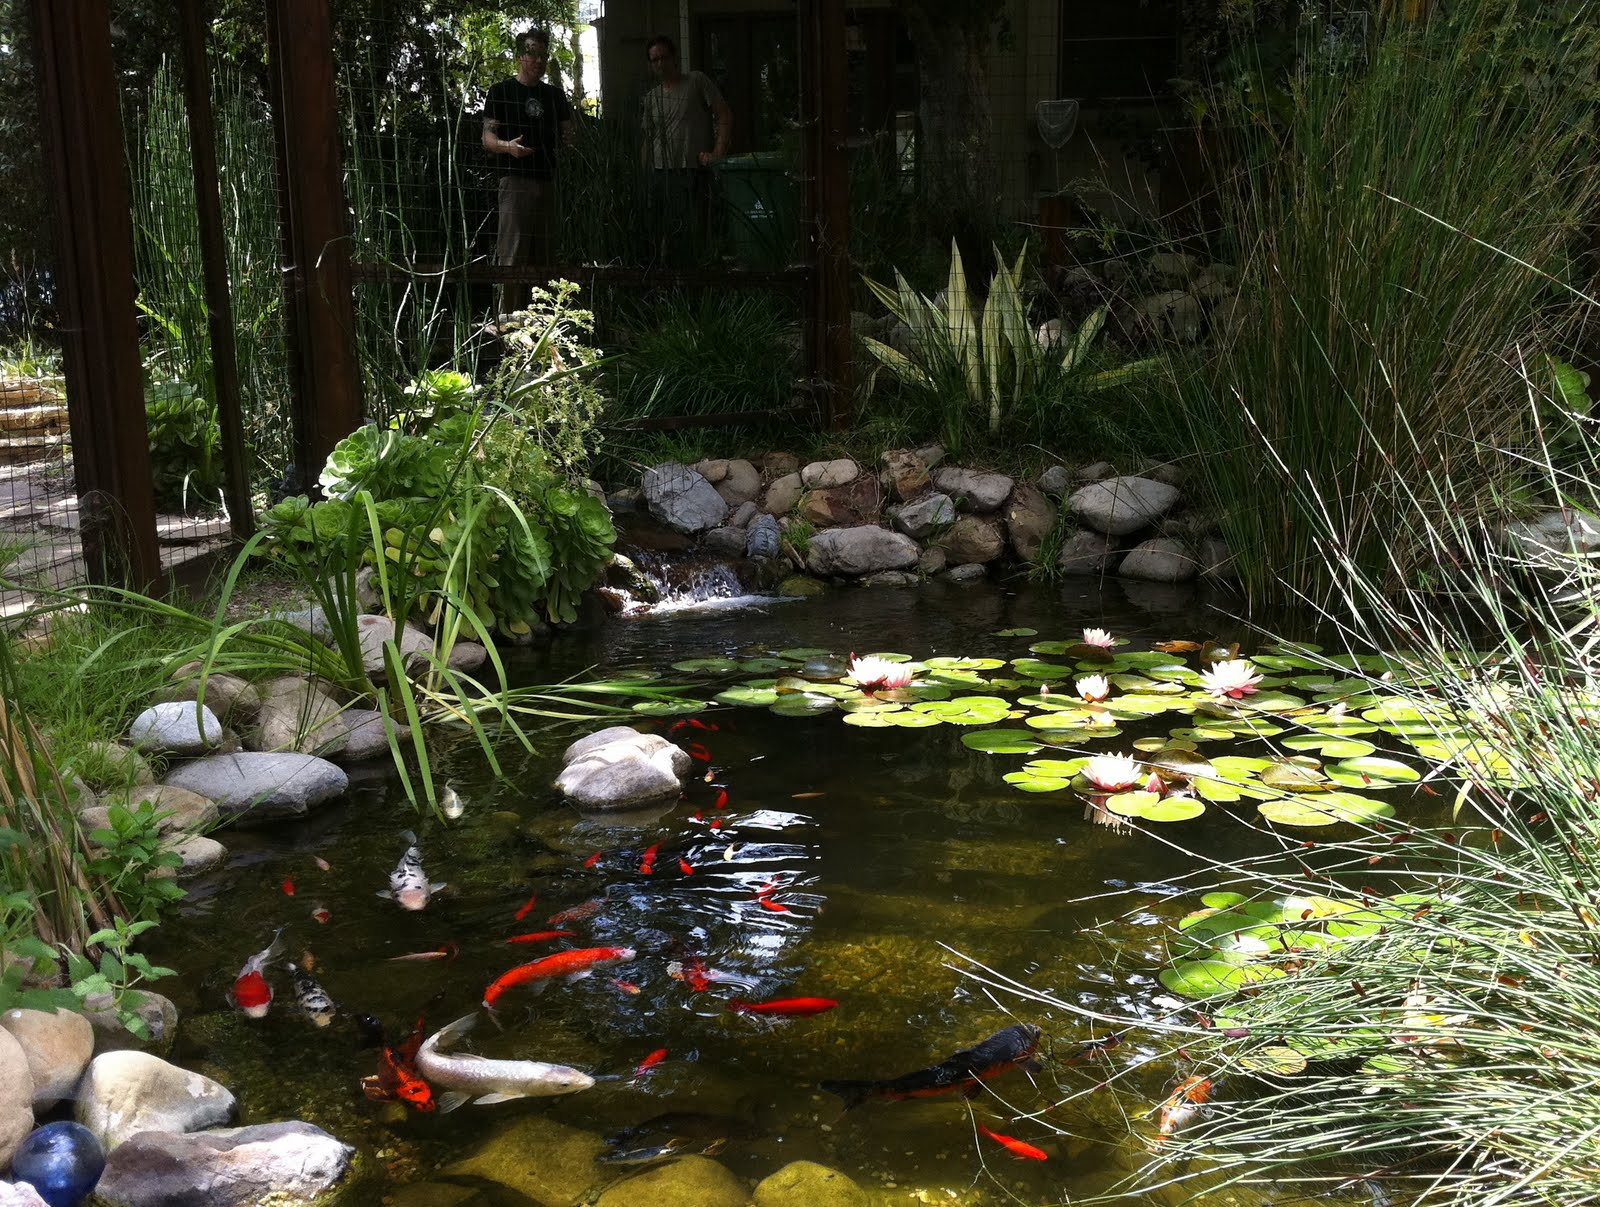 Elgin eco house garden serenity in the midst of the city for Patio koi pond